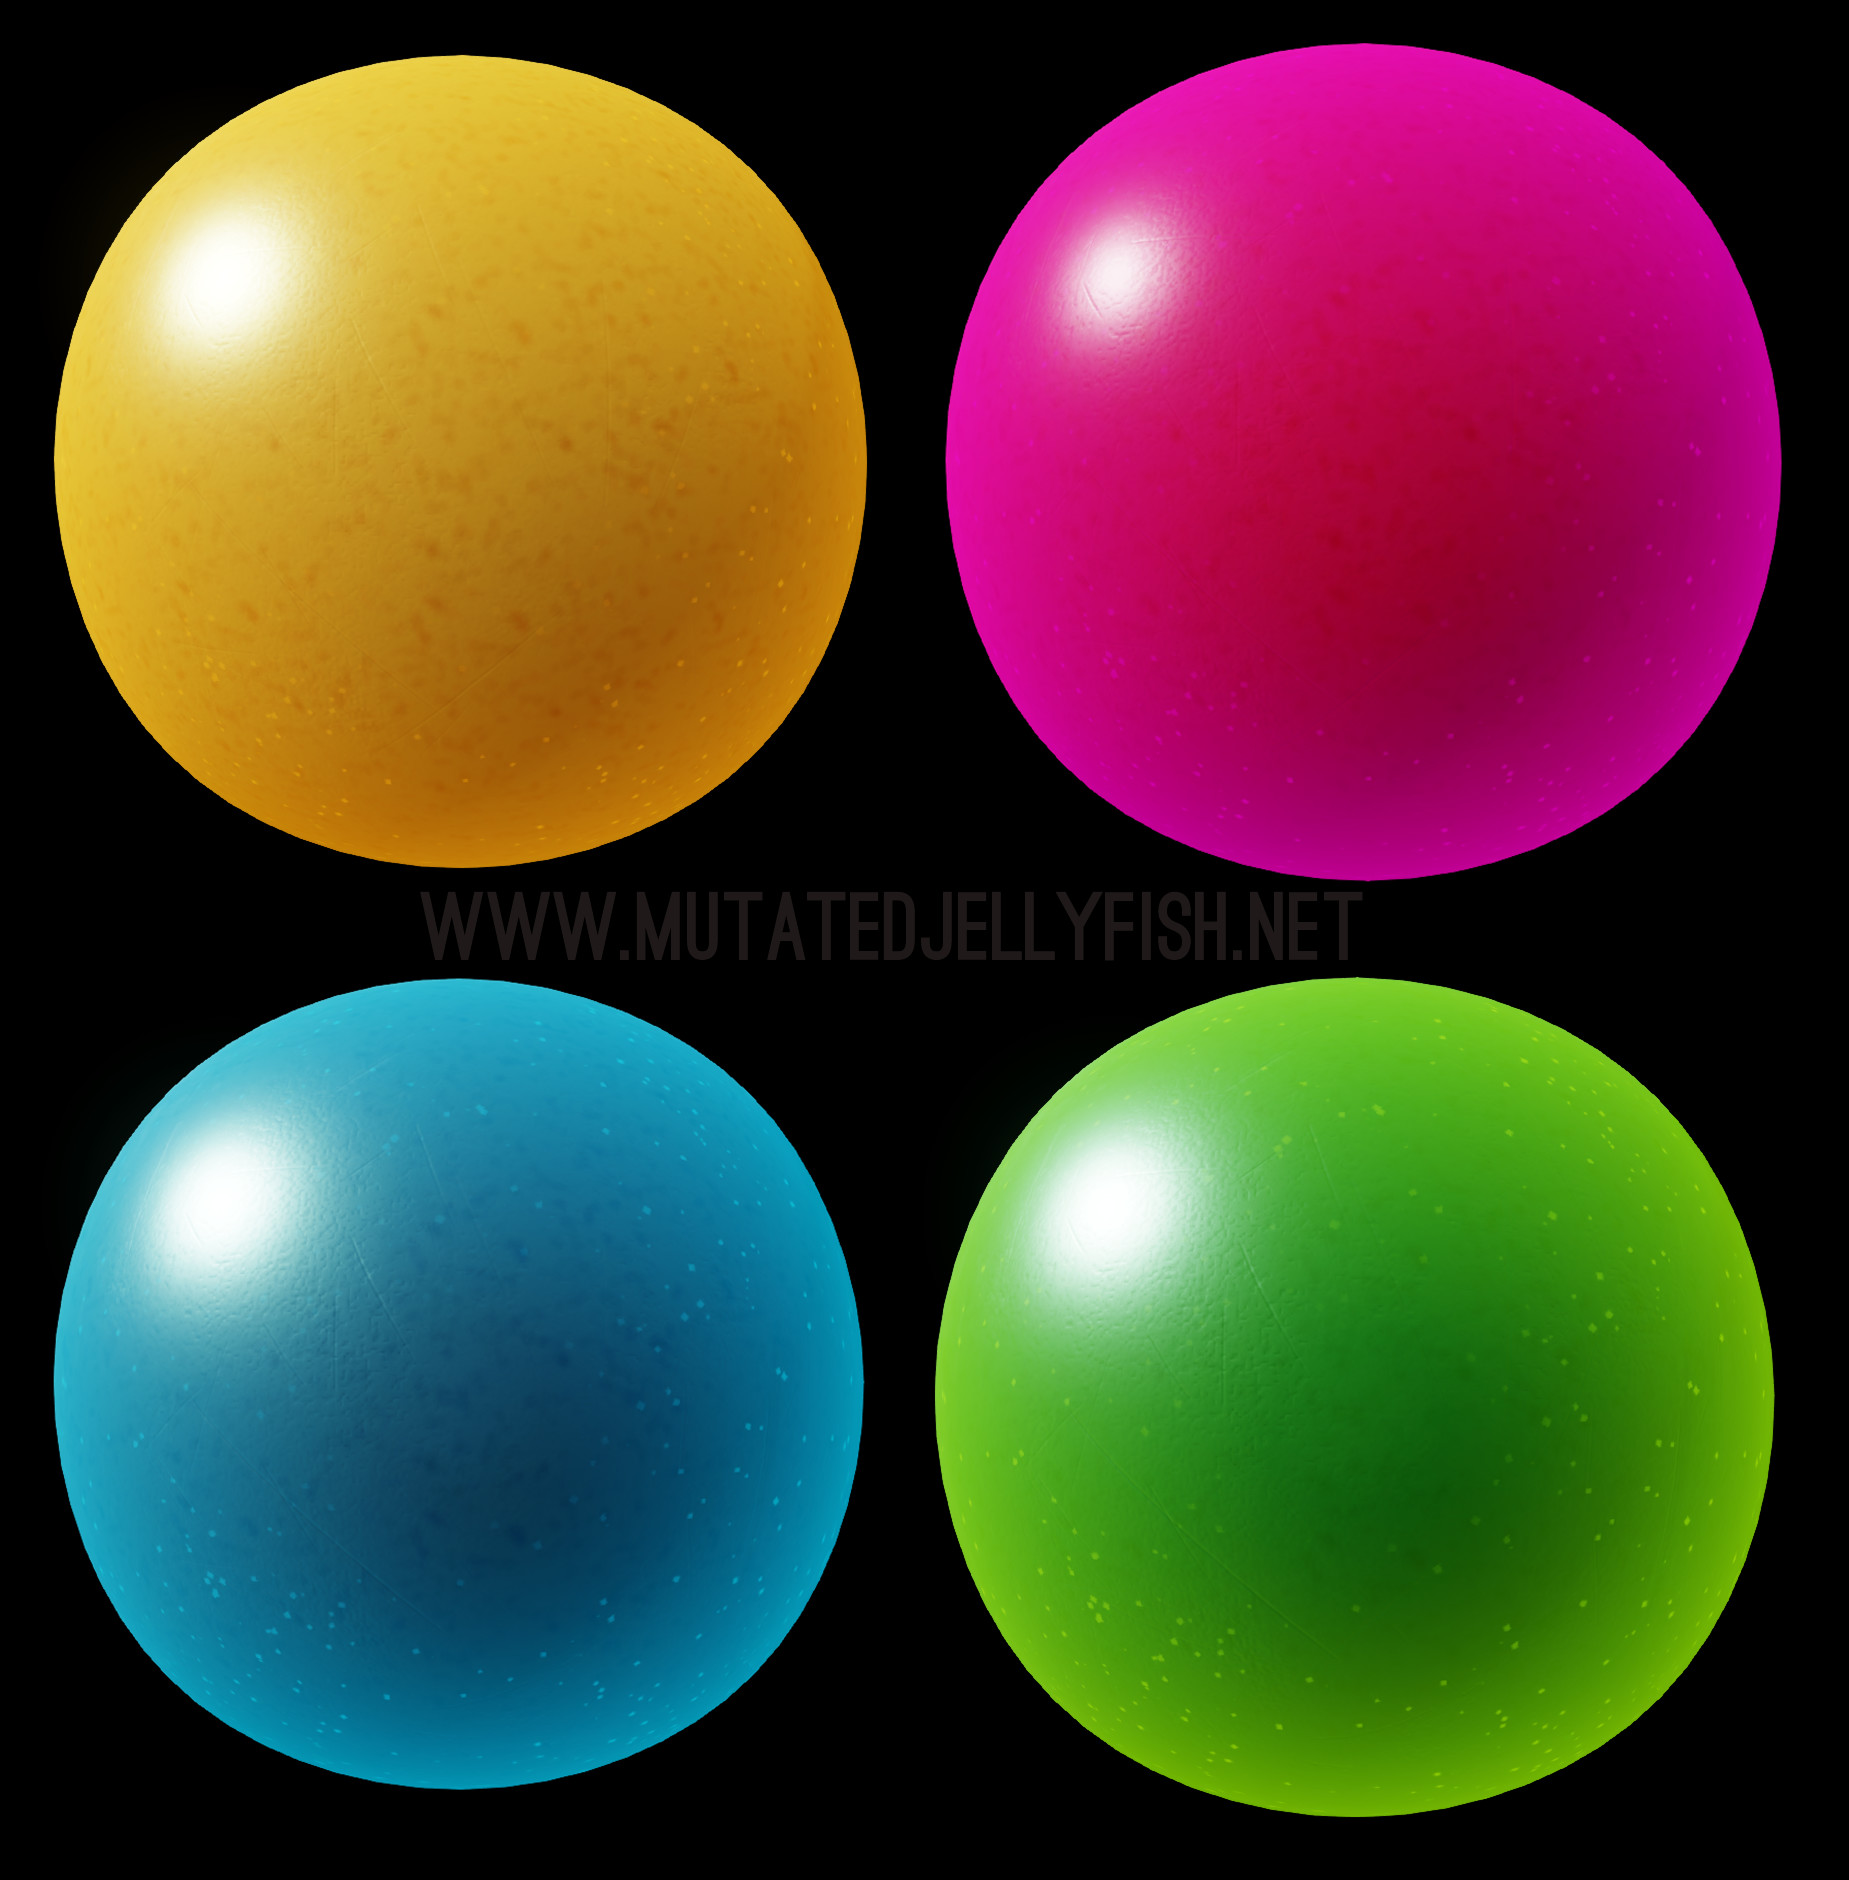 Worth dayley spheres 06